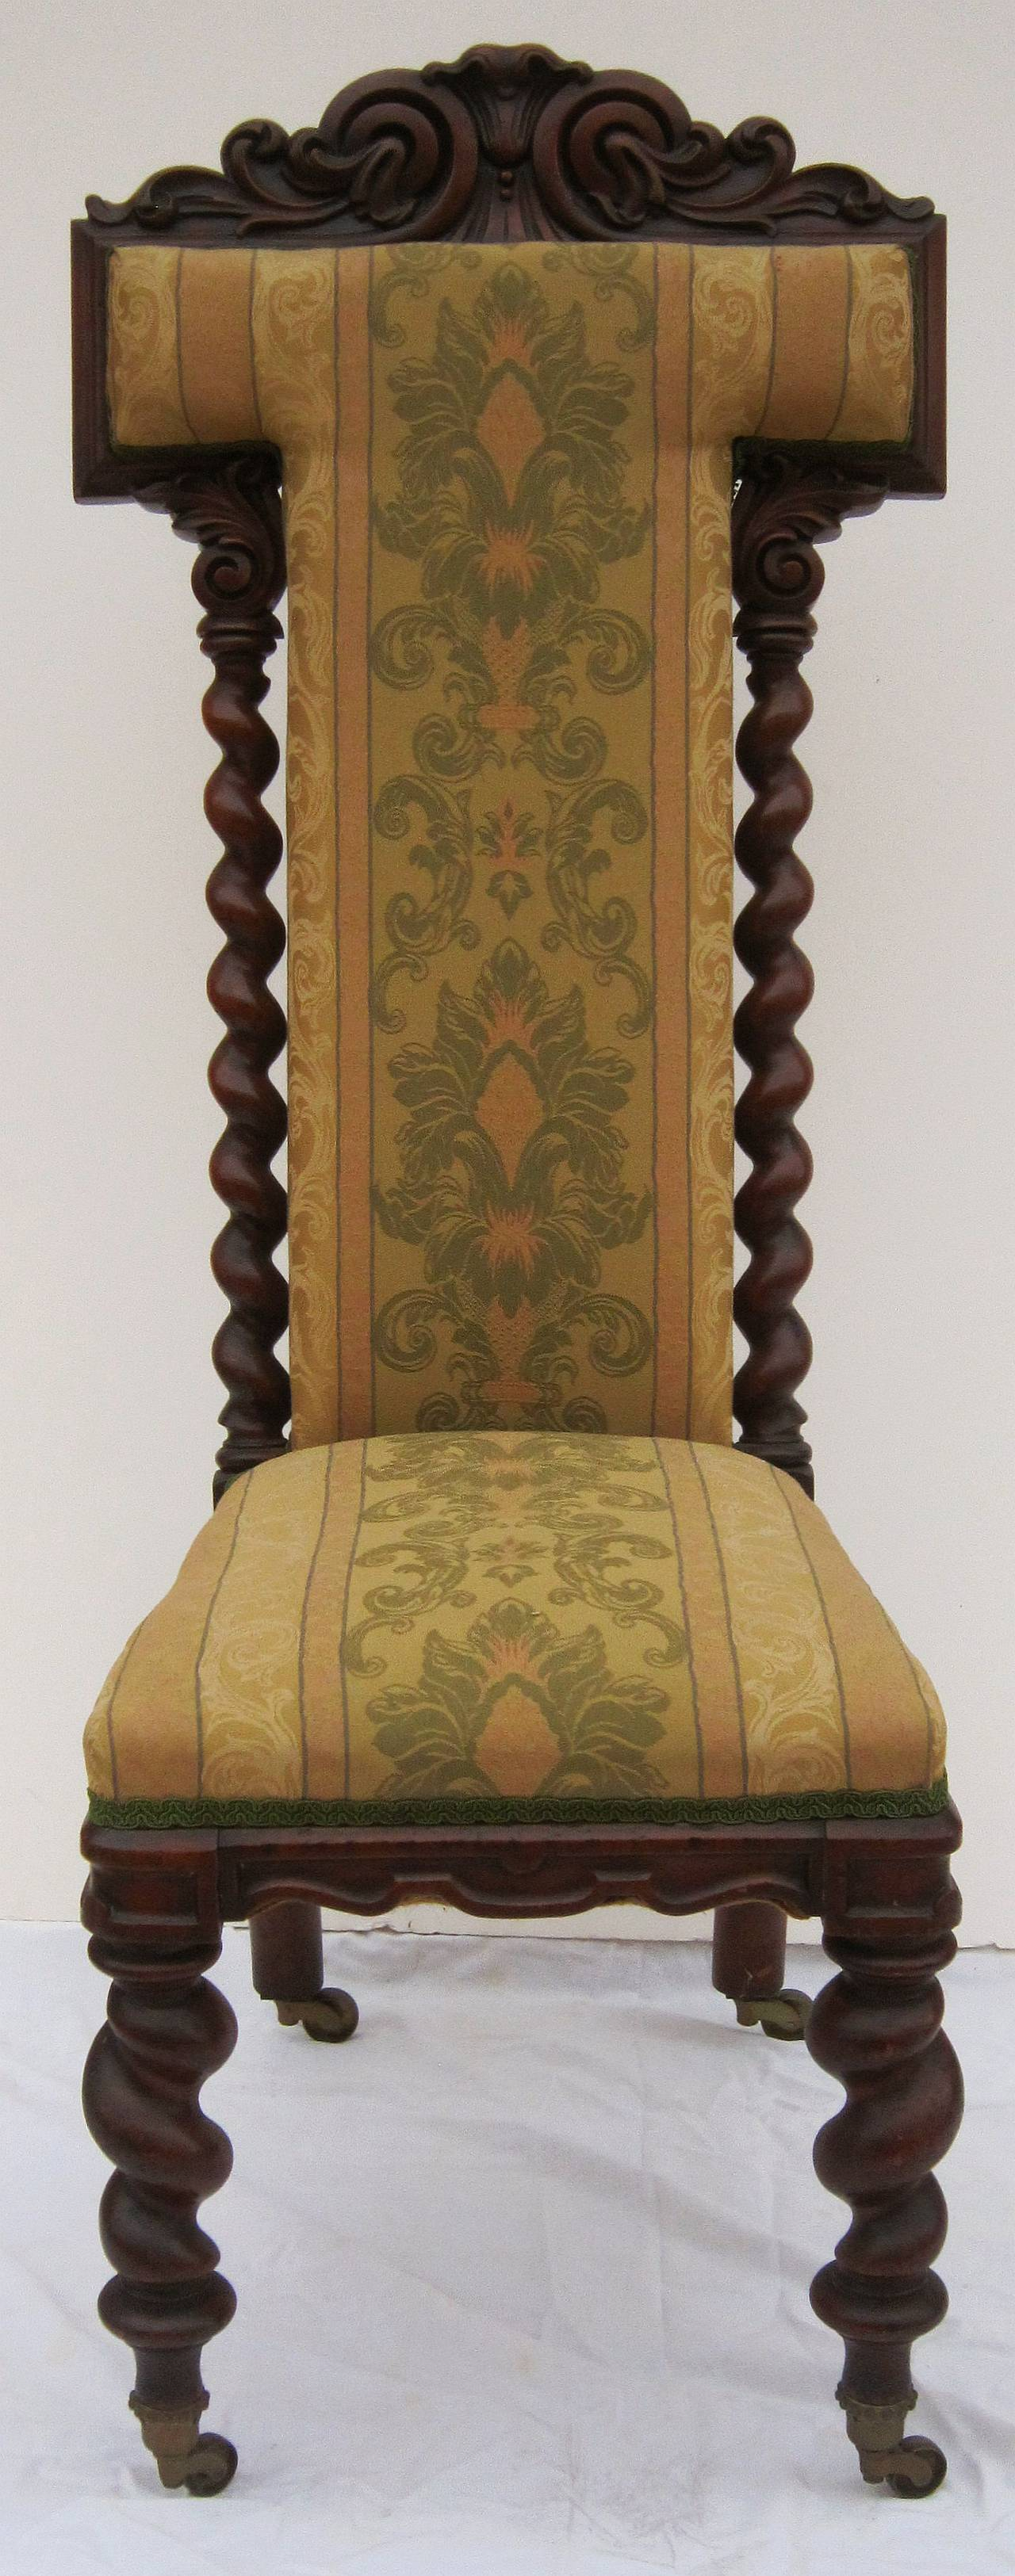 A handsome English prayer chair (or prie-dieu chair) of carved walnut  featuring - English Prayer Chair Of Carved Walnut For Sale At 1stdibs